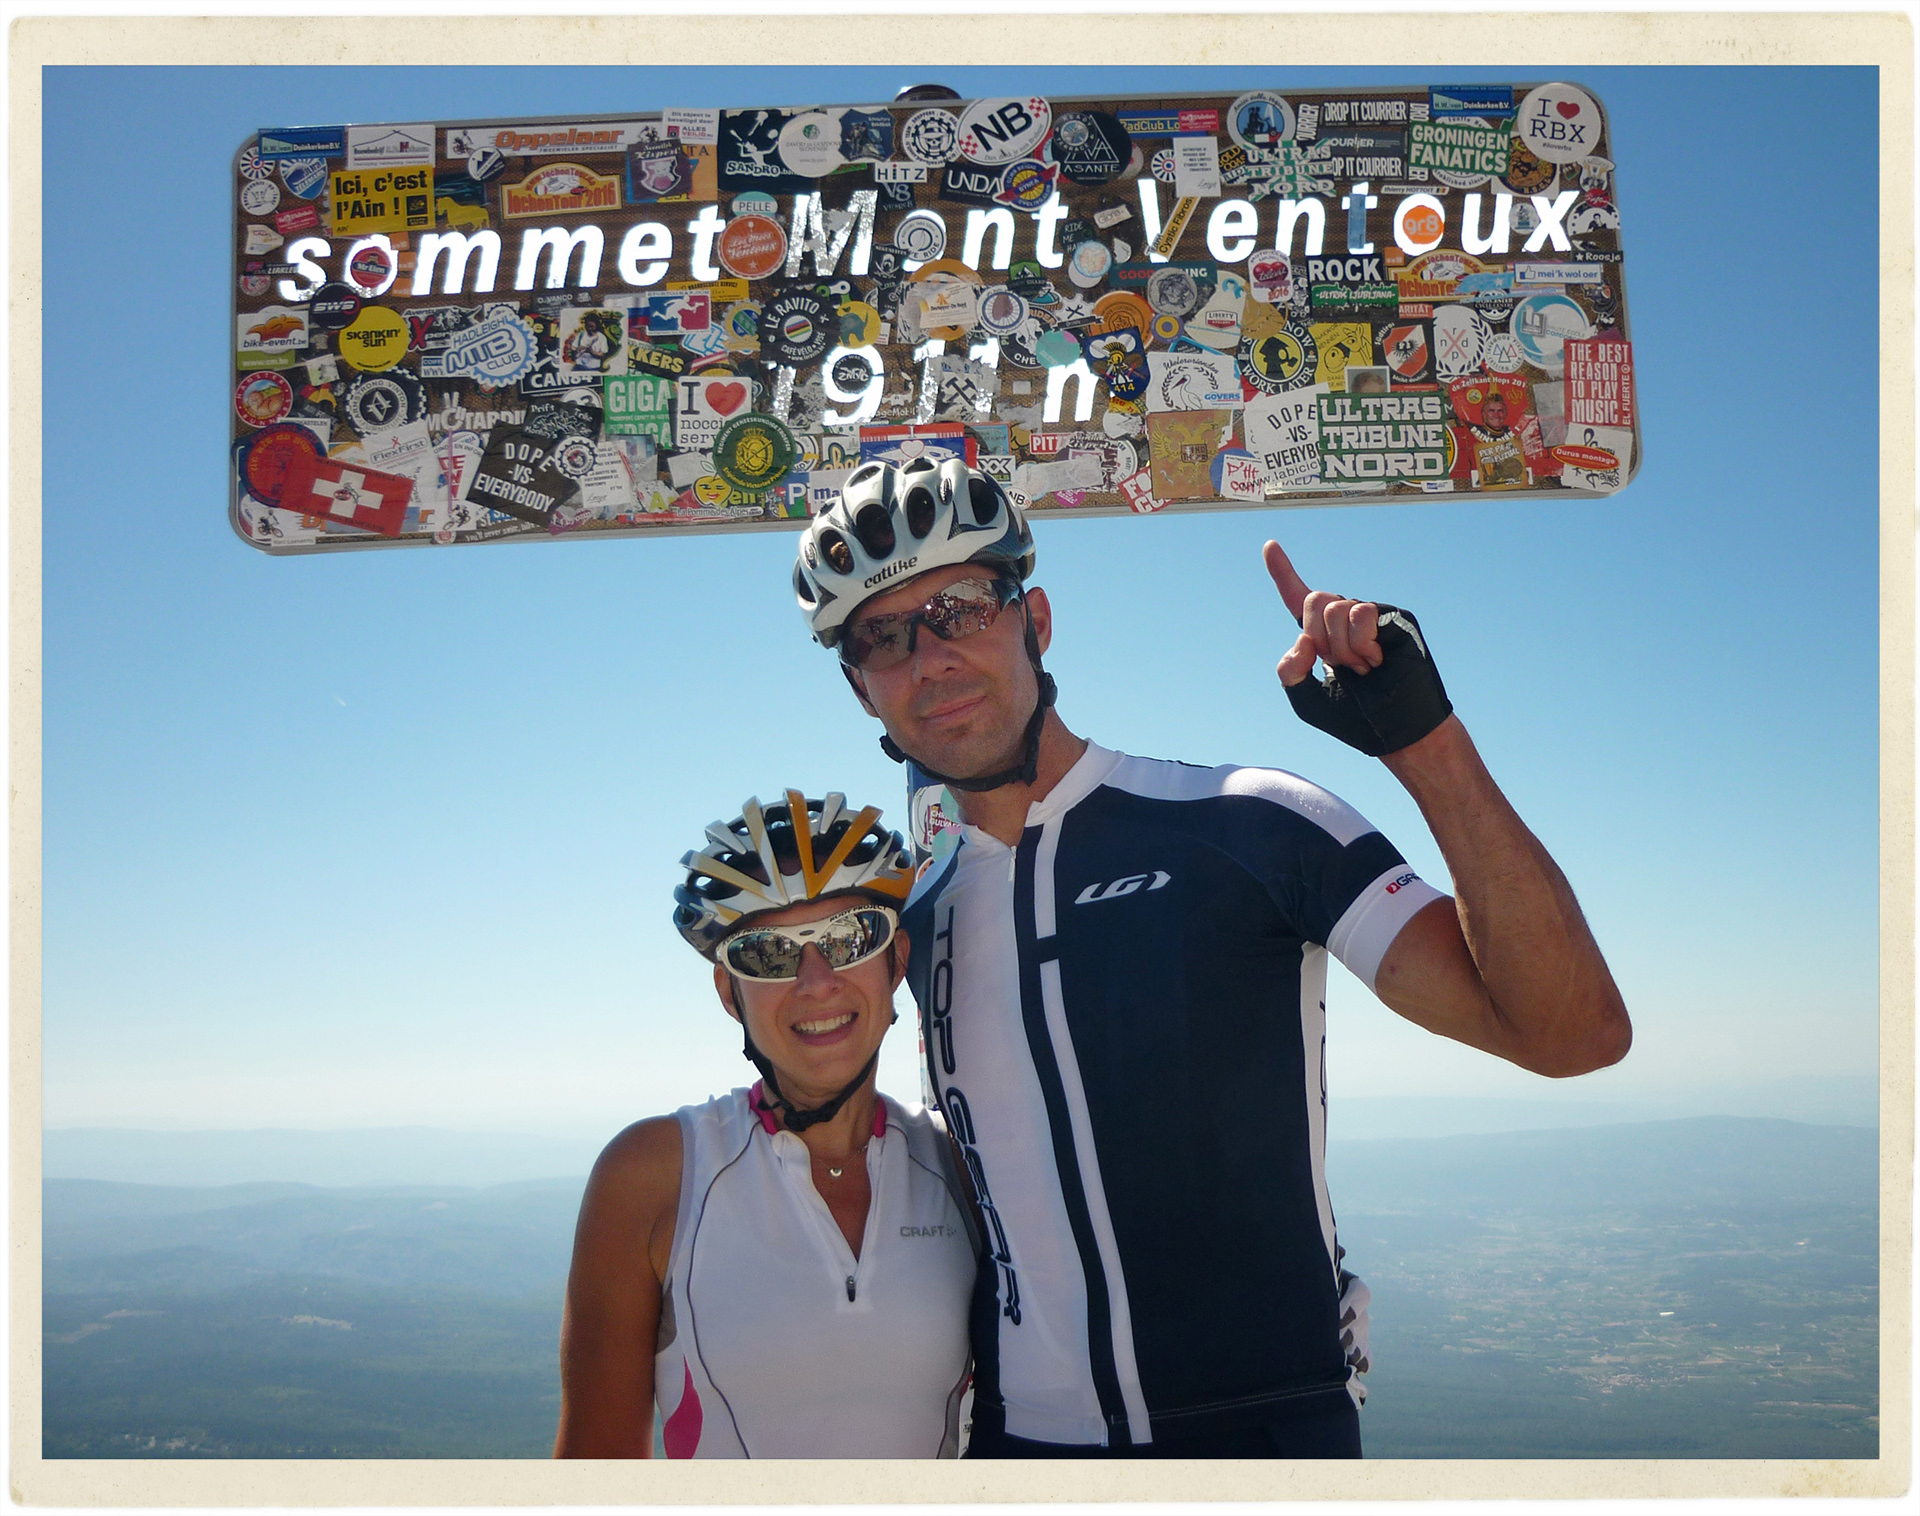 Mont Ventoux summit.